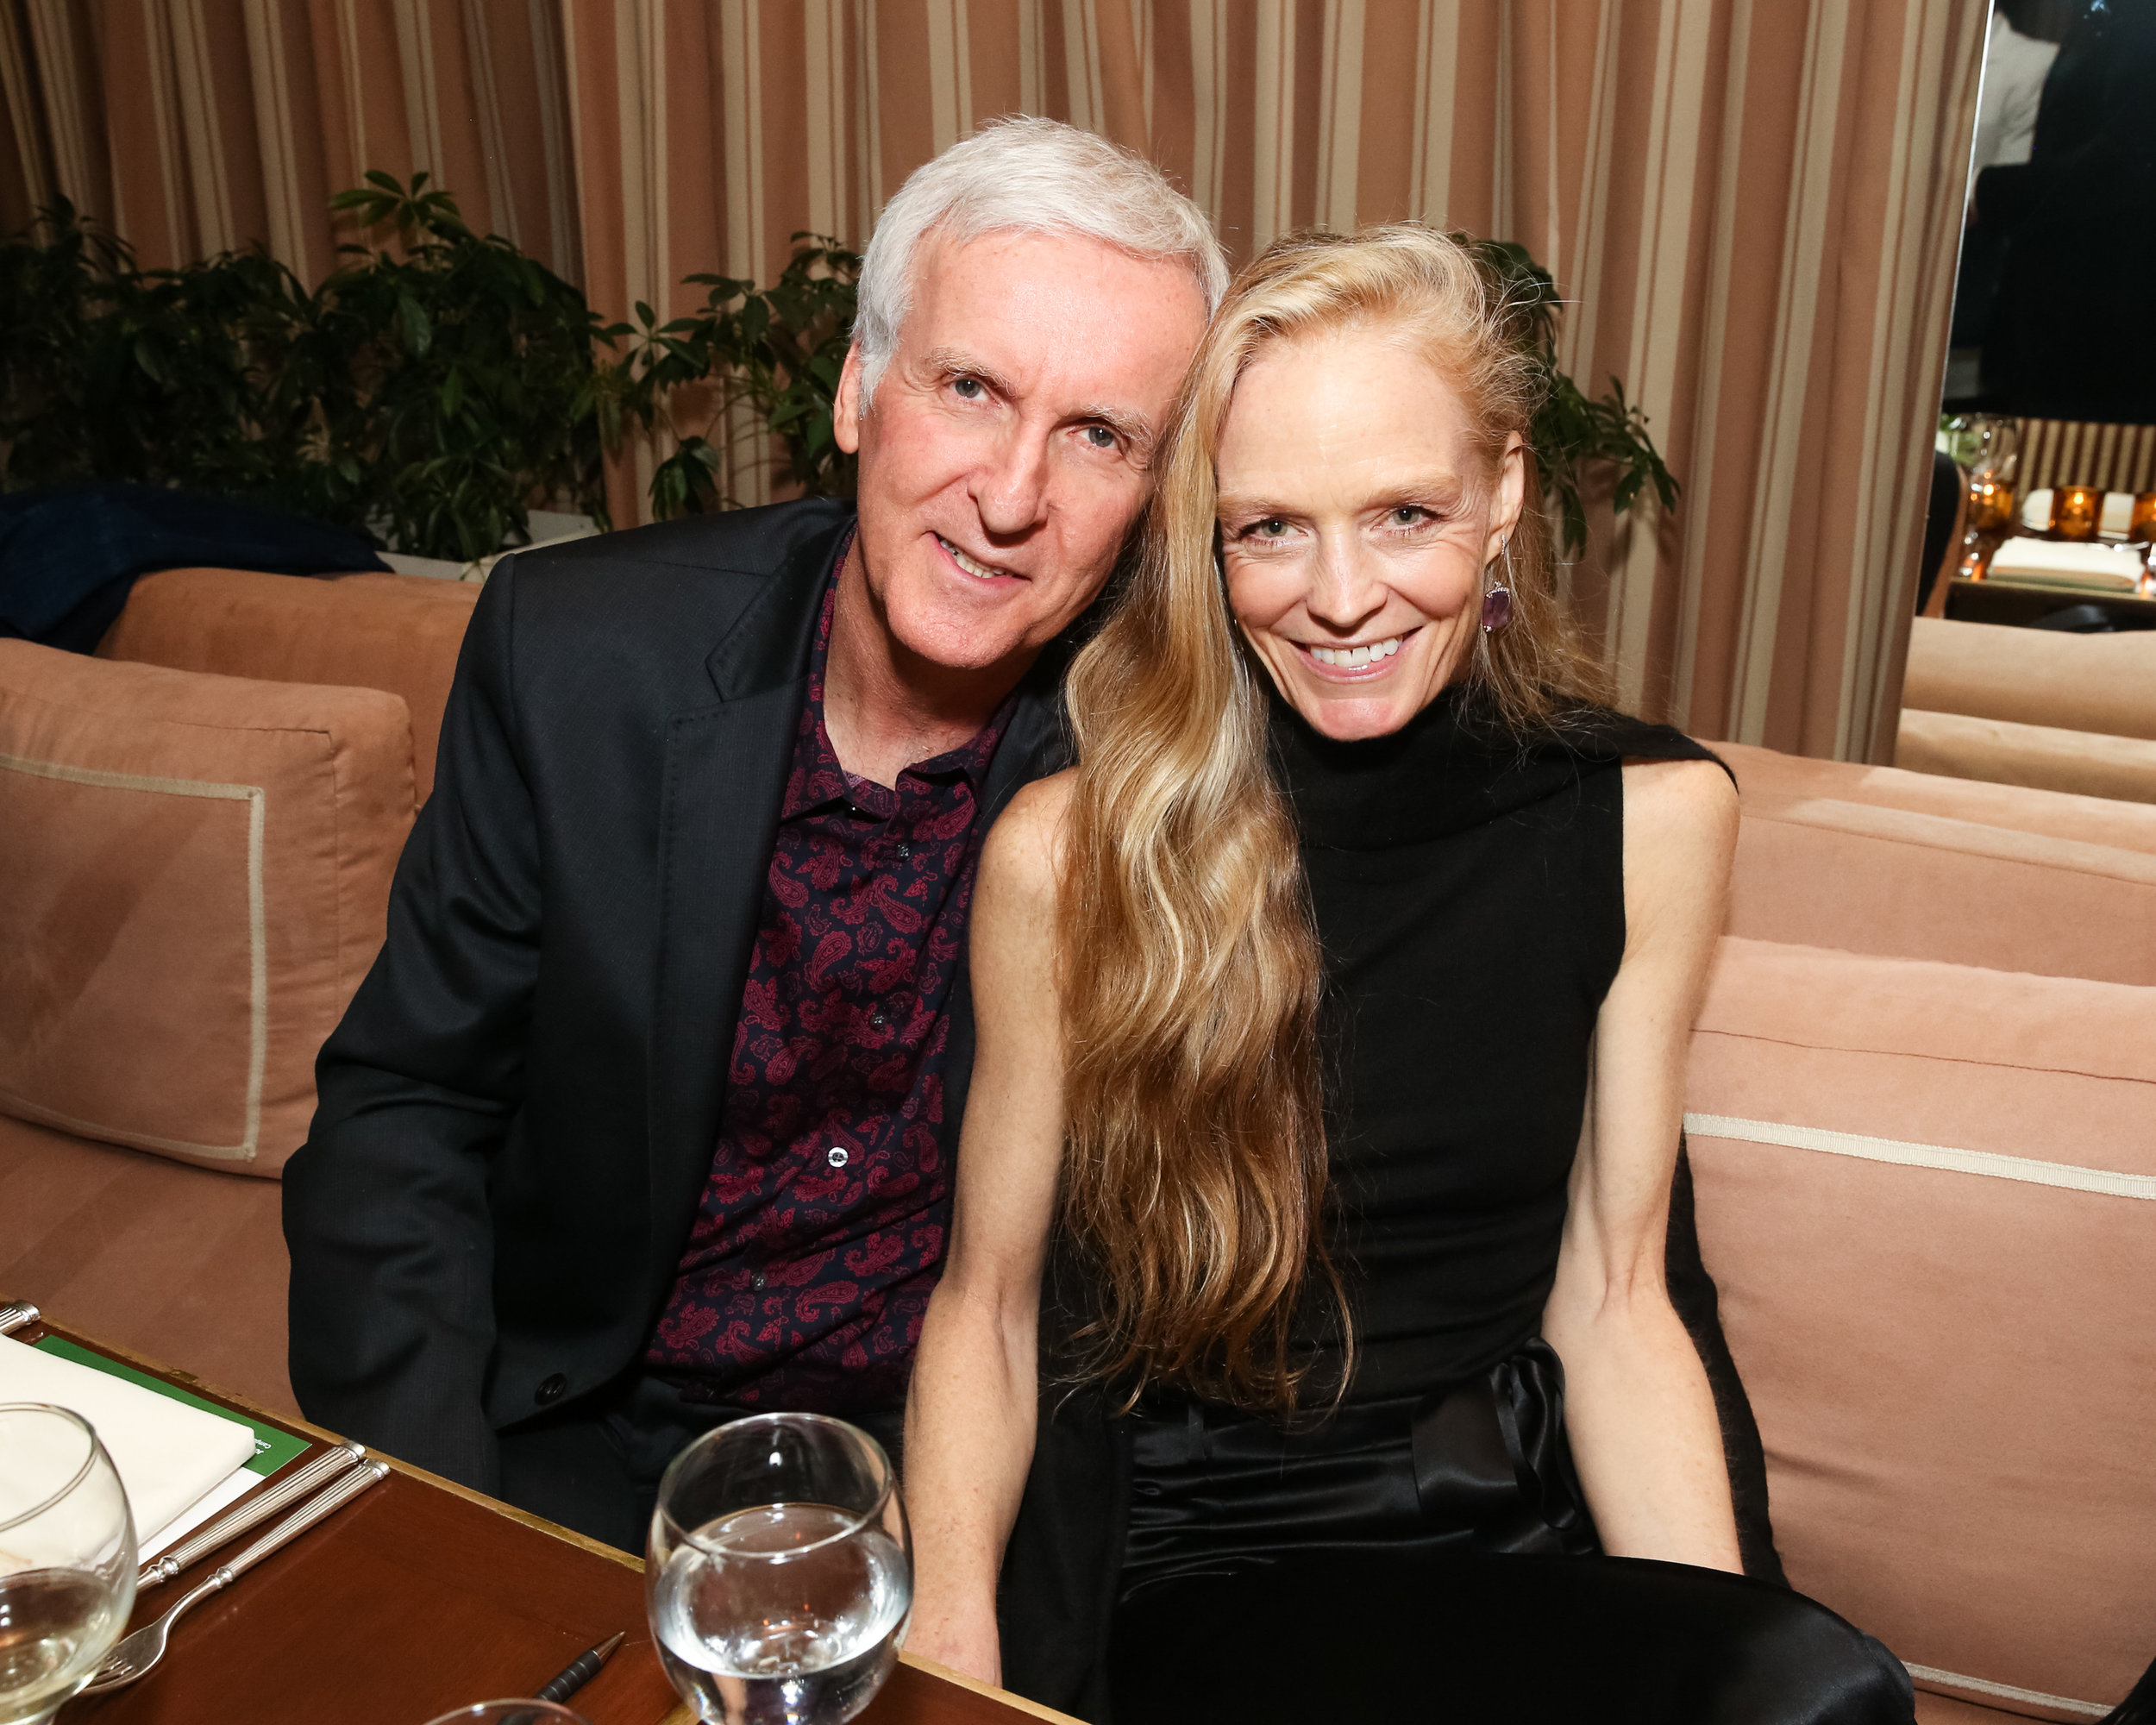 Suzy Amis Cameron pictured with her husband James Cameron.